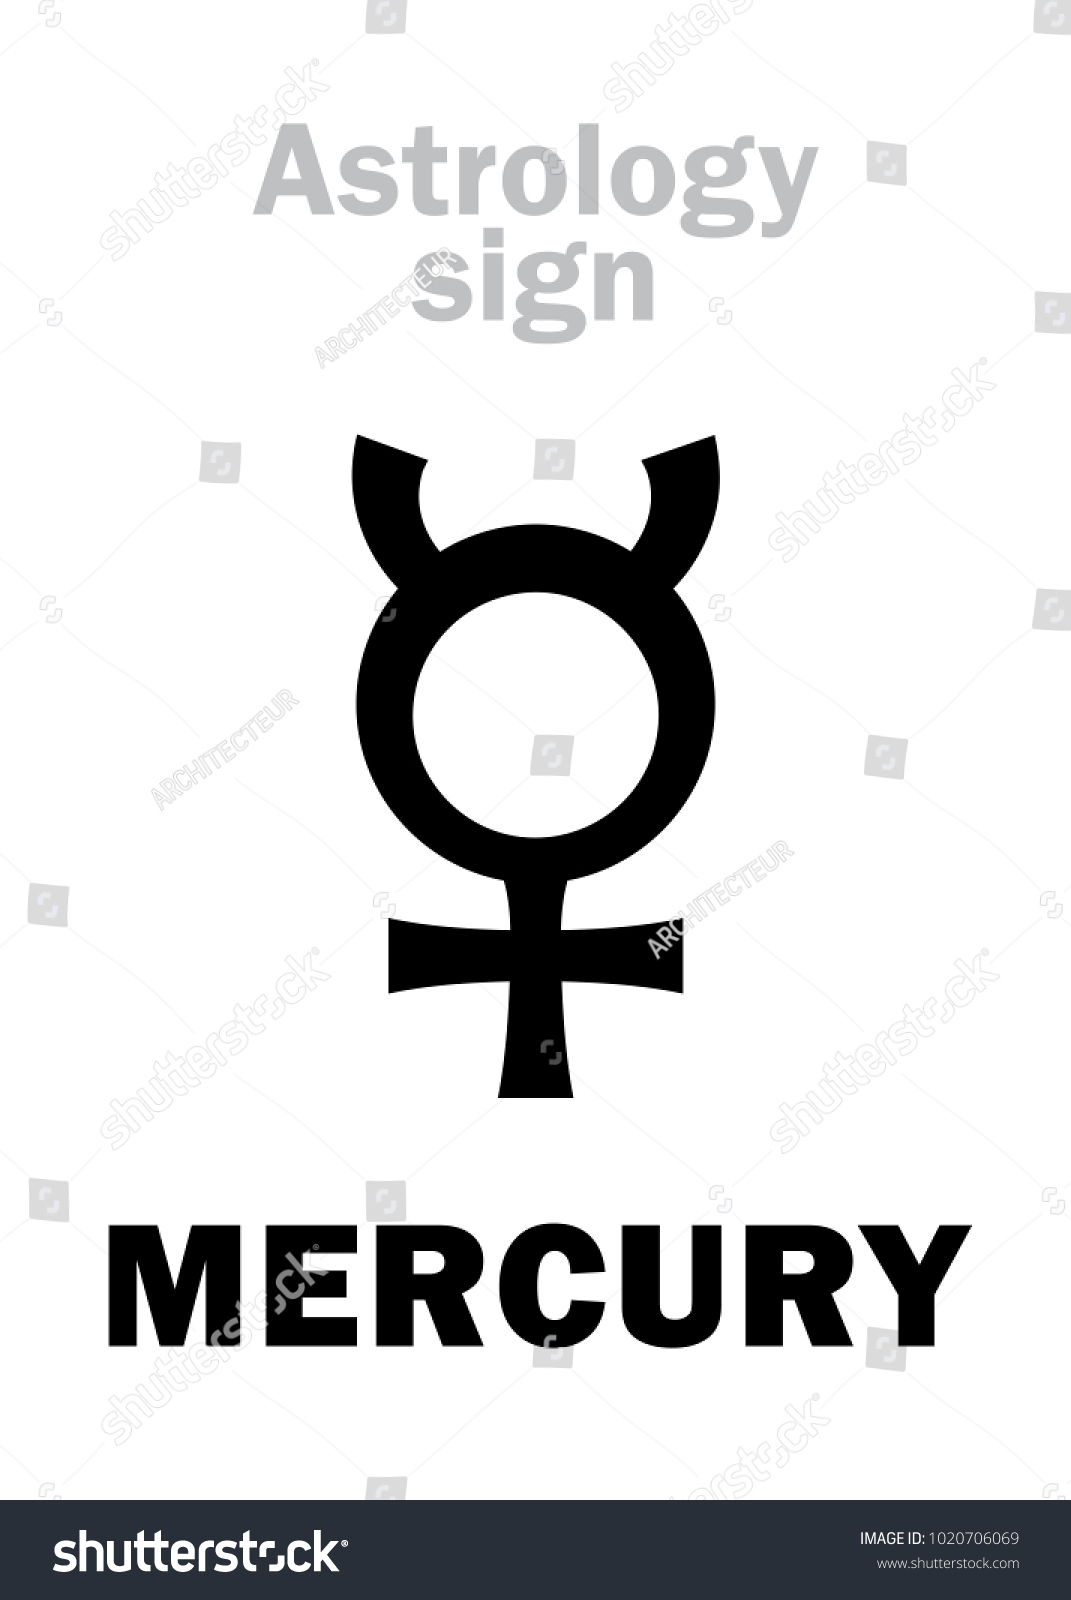 Astrology alphabet mercury classic minor mental stock vector astrology alphabet mercury classic minor mental planet hieroglyphics character sign single symbol biocorpaavc Image collections